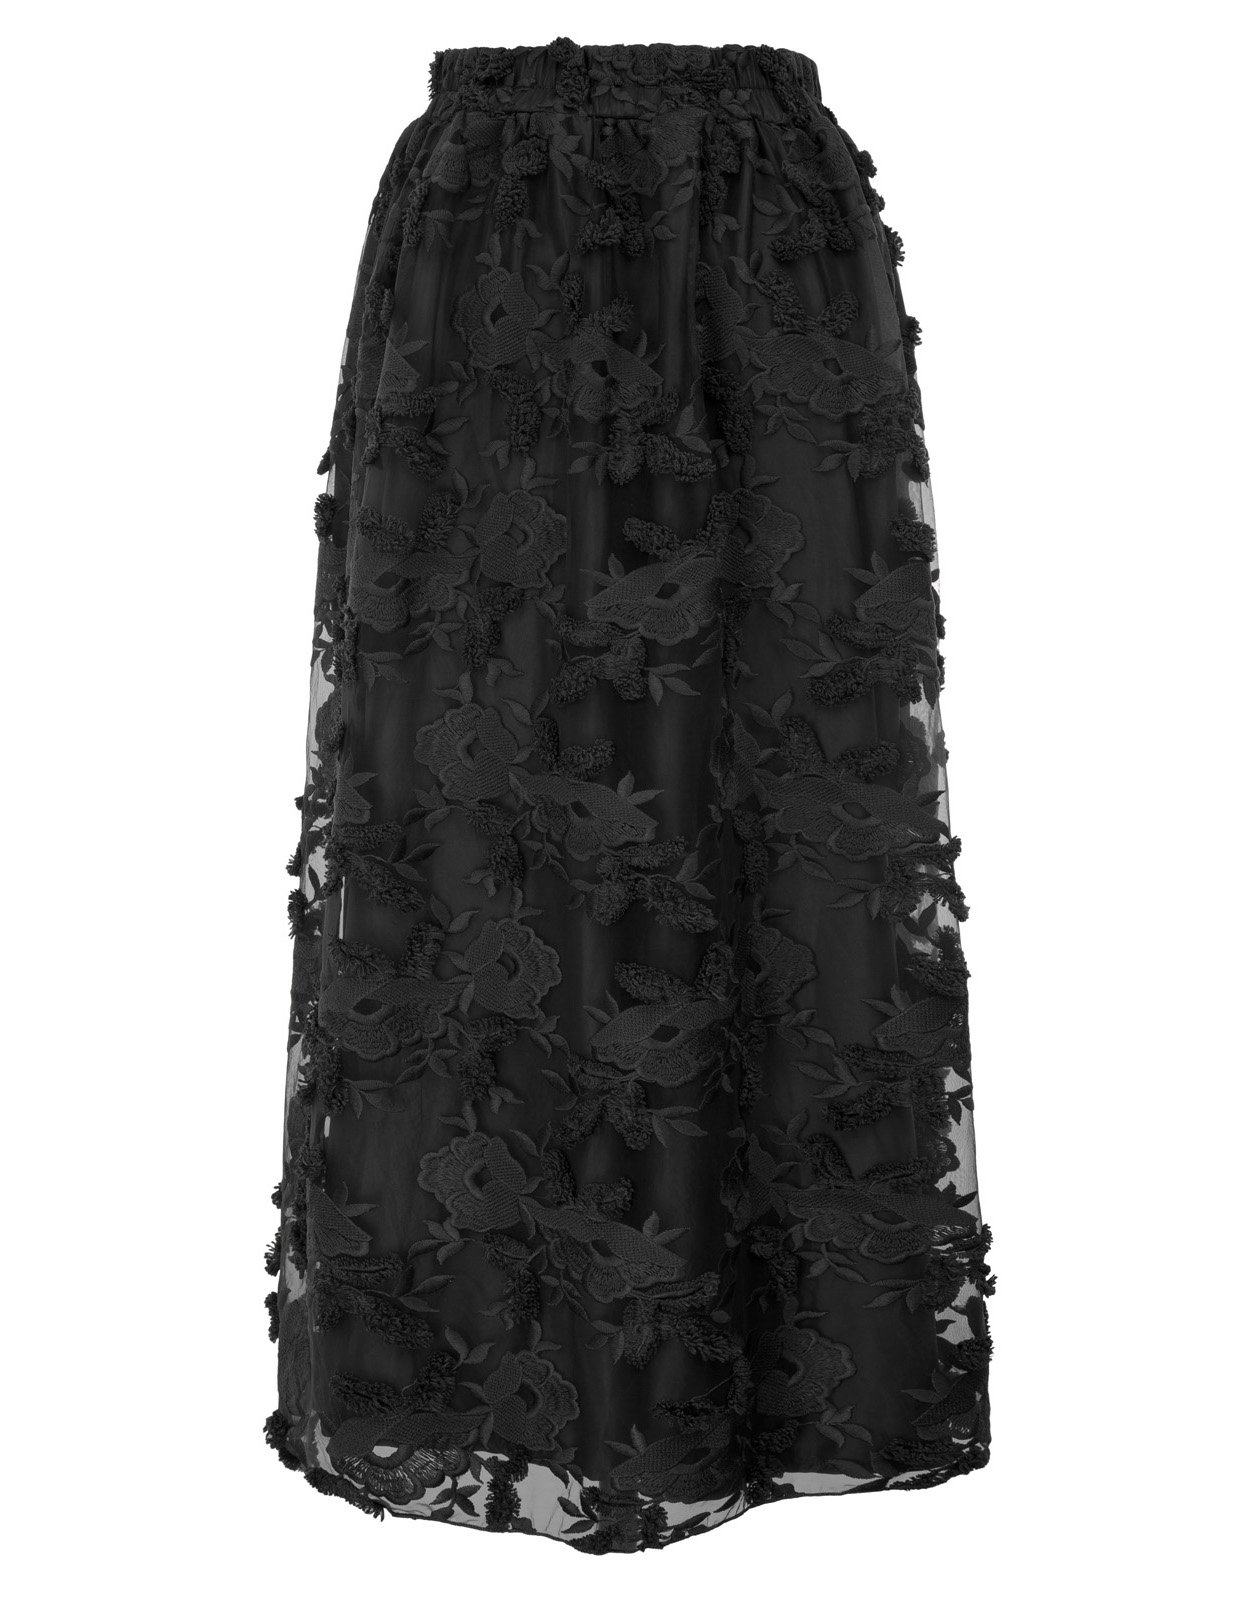 Belle Poque Steampunk Gothic Victorian High Low Skirt Bustle Style 4